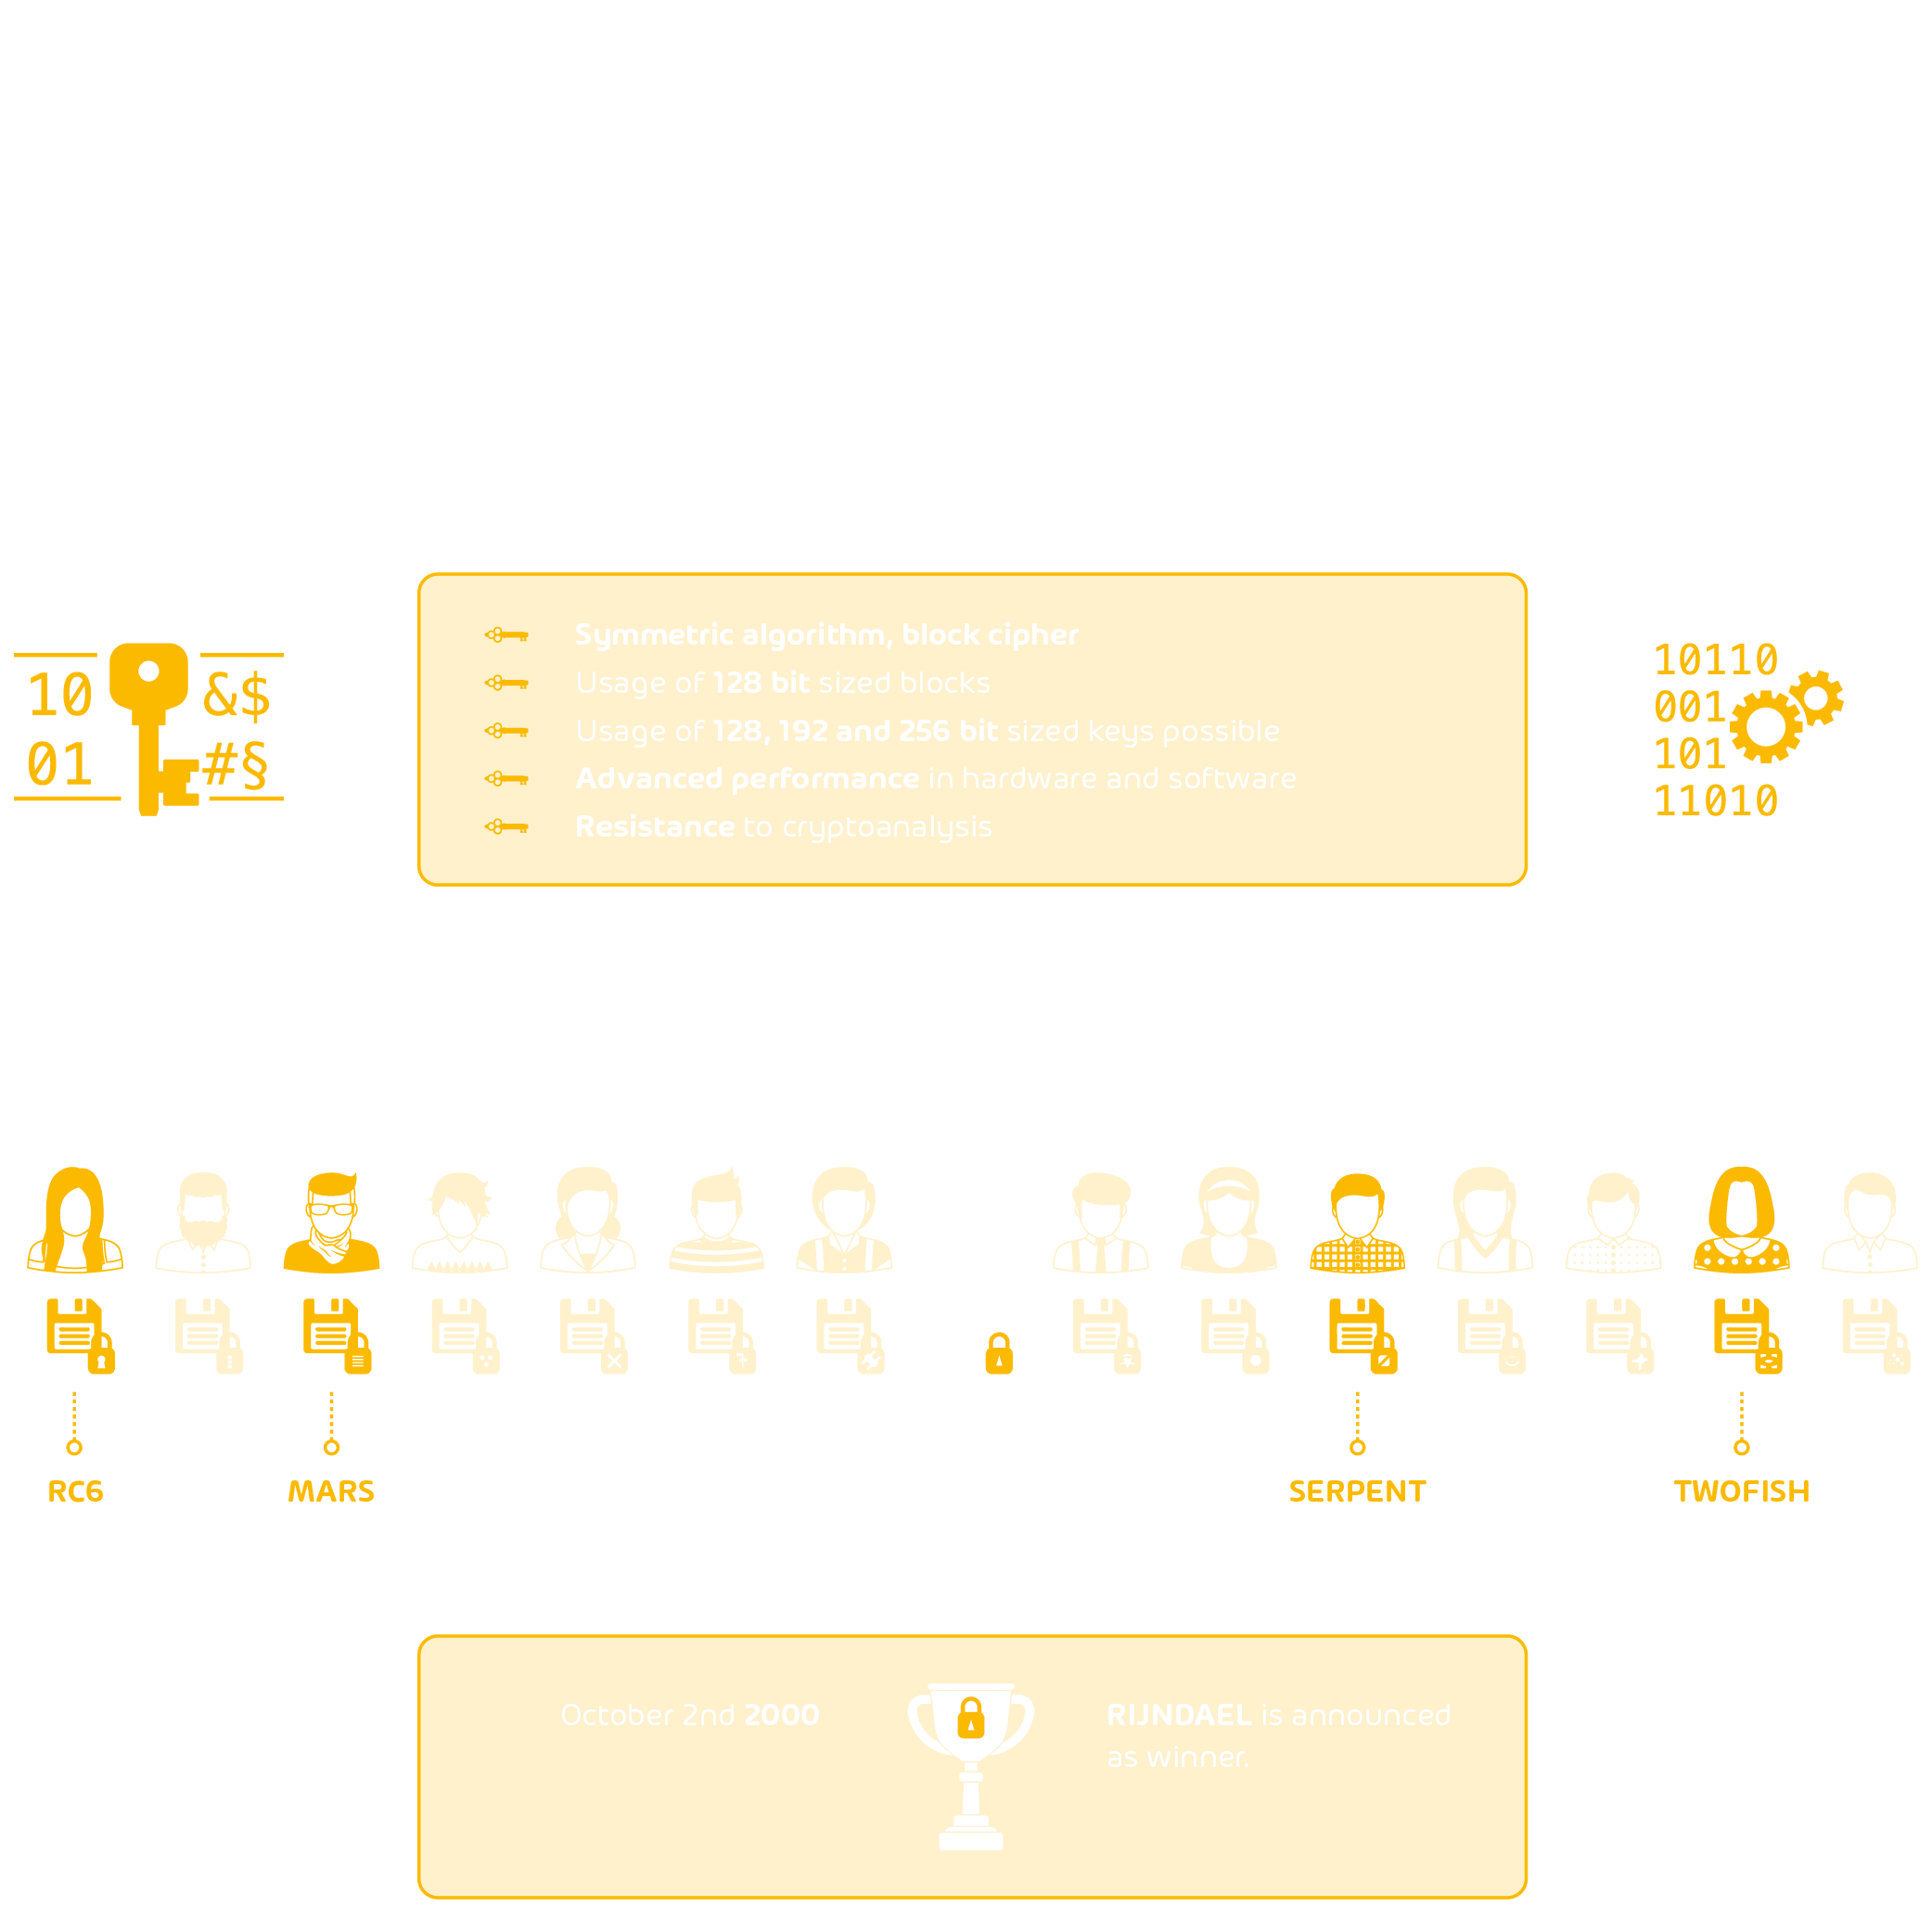 Infographic about Advanced Encryption Standard